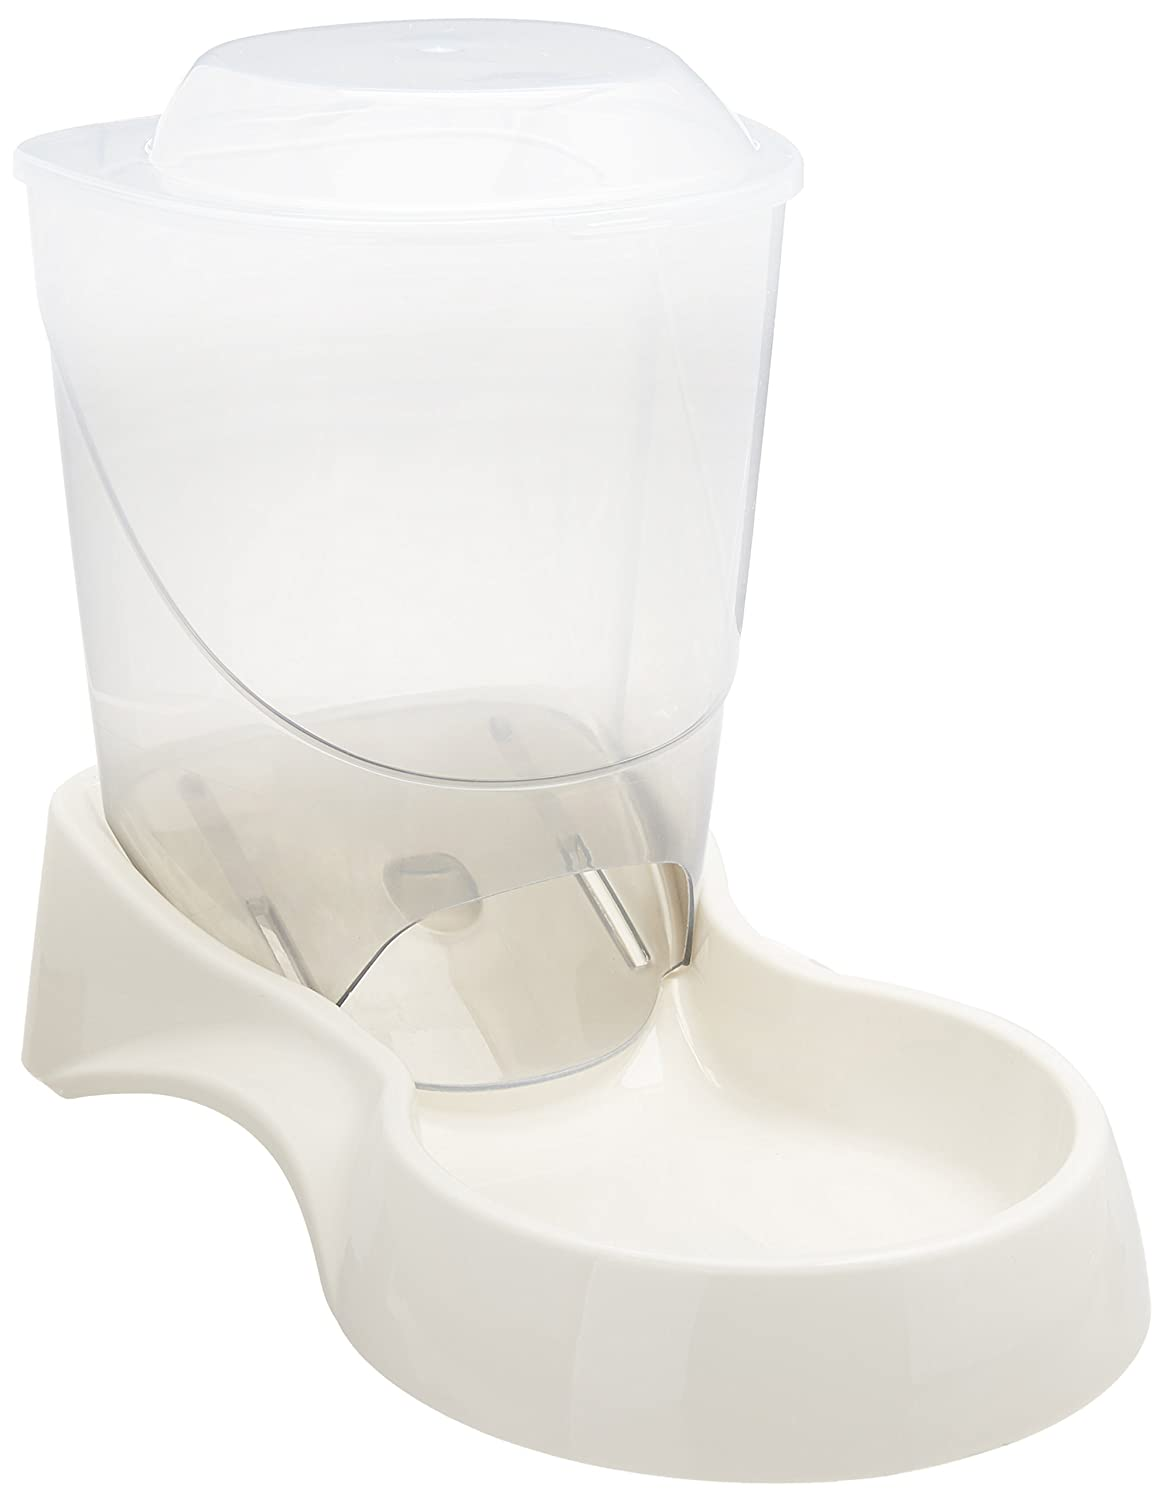 Van Ness X-Small Auto Feeder, 1.5 Pound Van Ness Products AF2